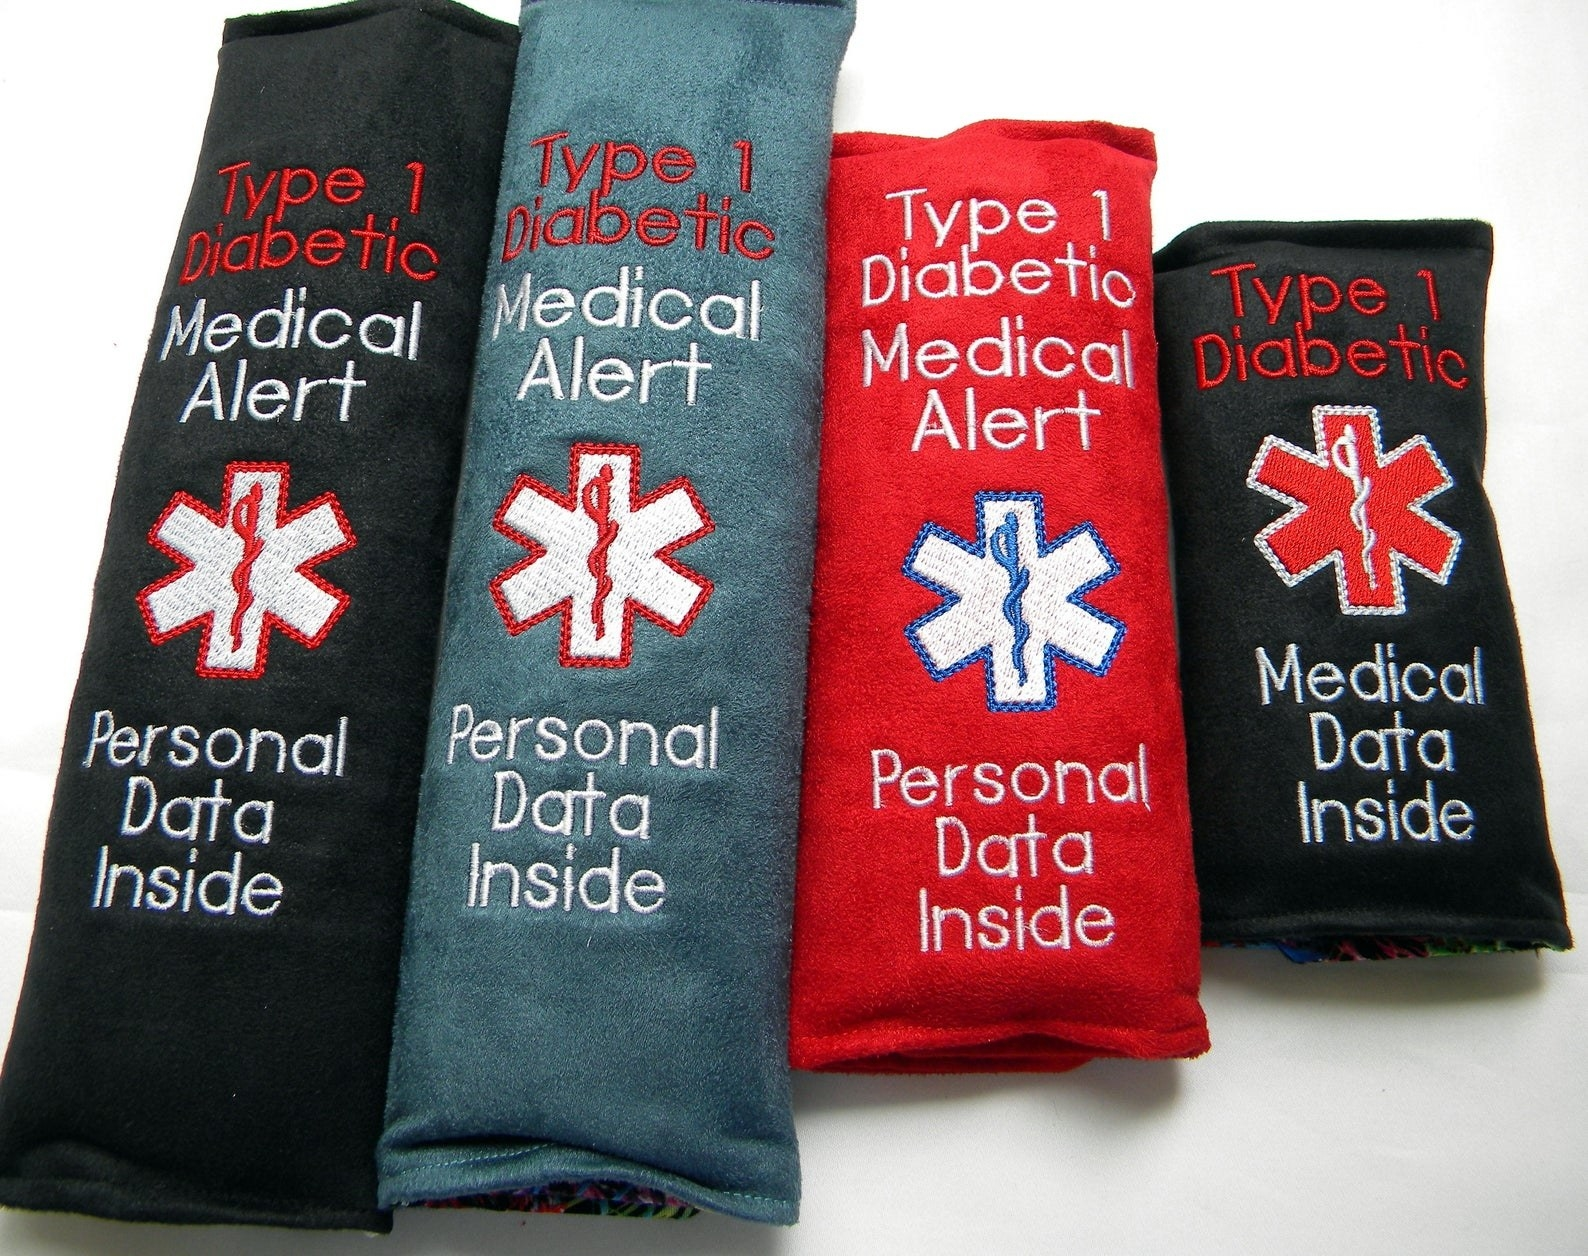 row of seat belt covers with Type 1 Diabetic medical alert on it